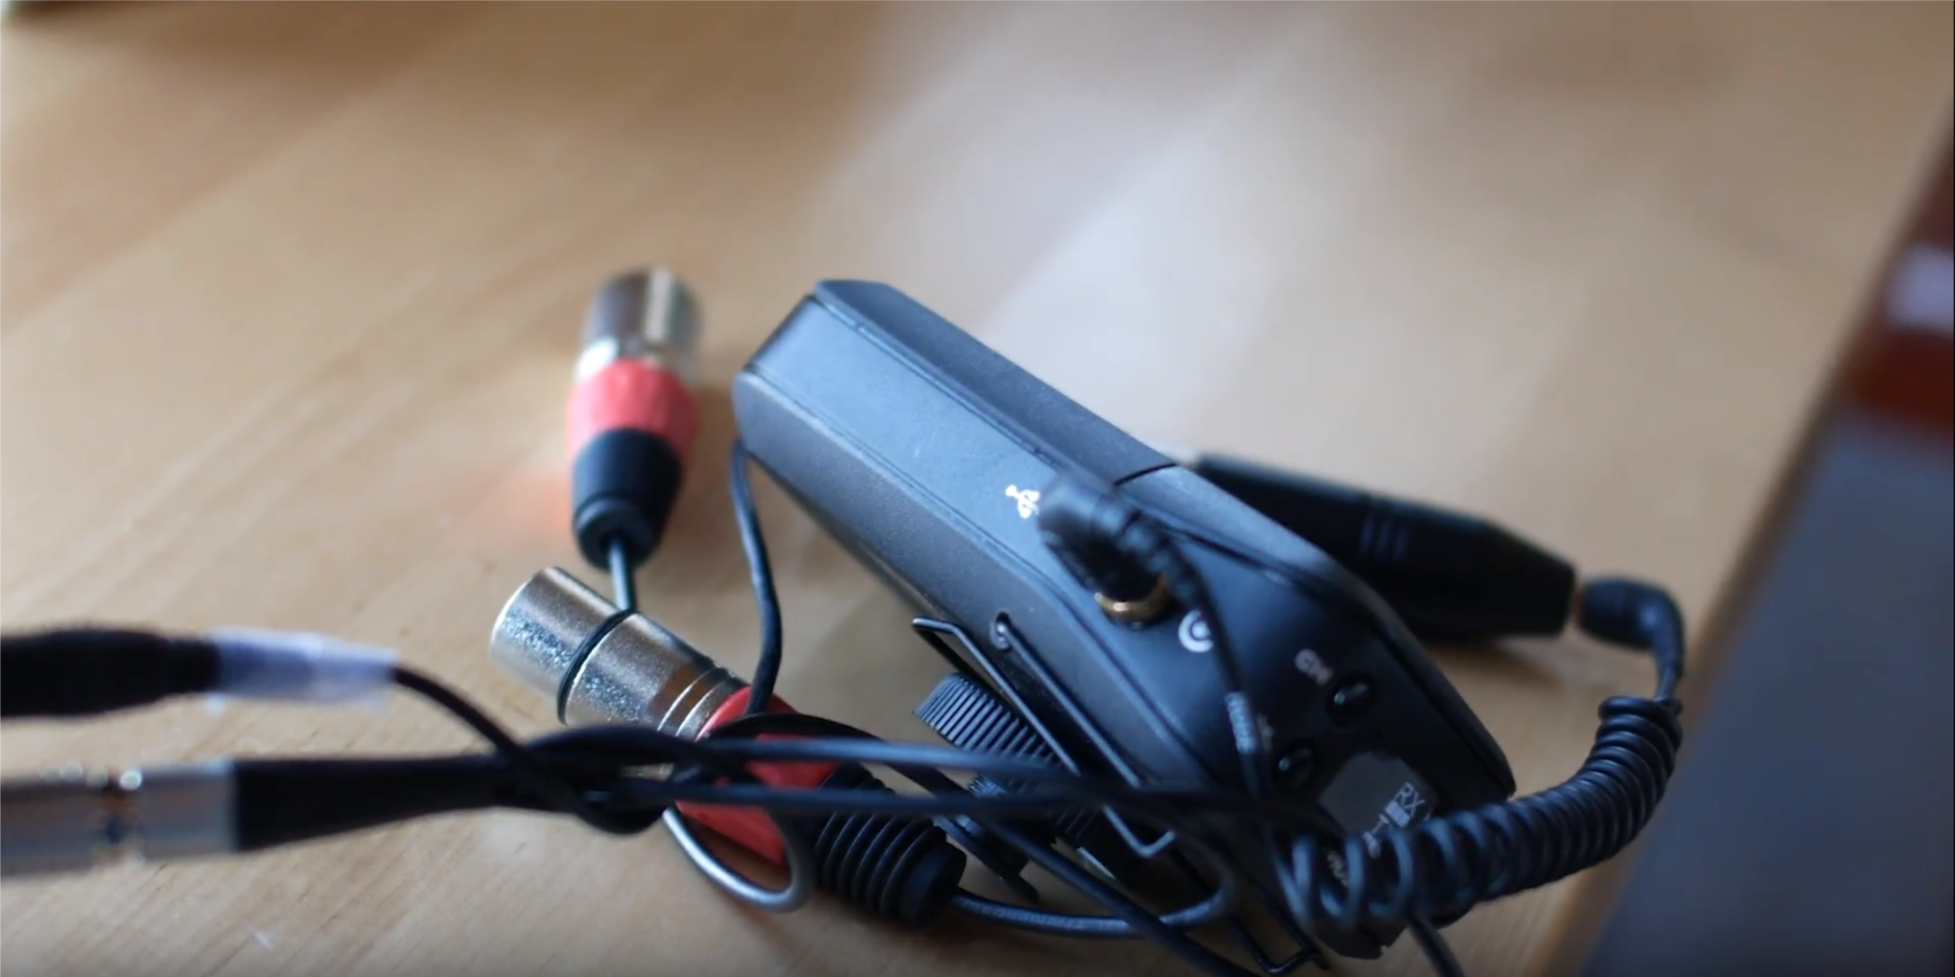 The RodeLink system can plug right into the micro-XLR adapter of the Atomos Shogun Flame, but you will need a  3.5mm to male_XLR adapter.